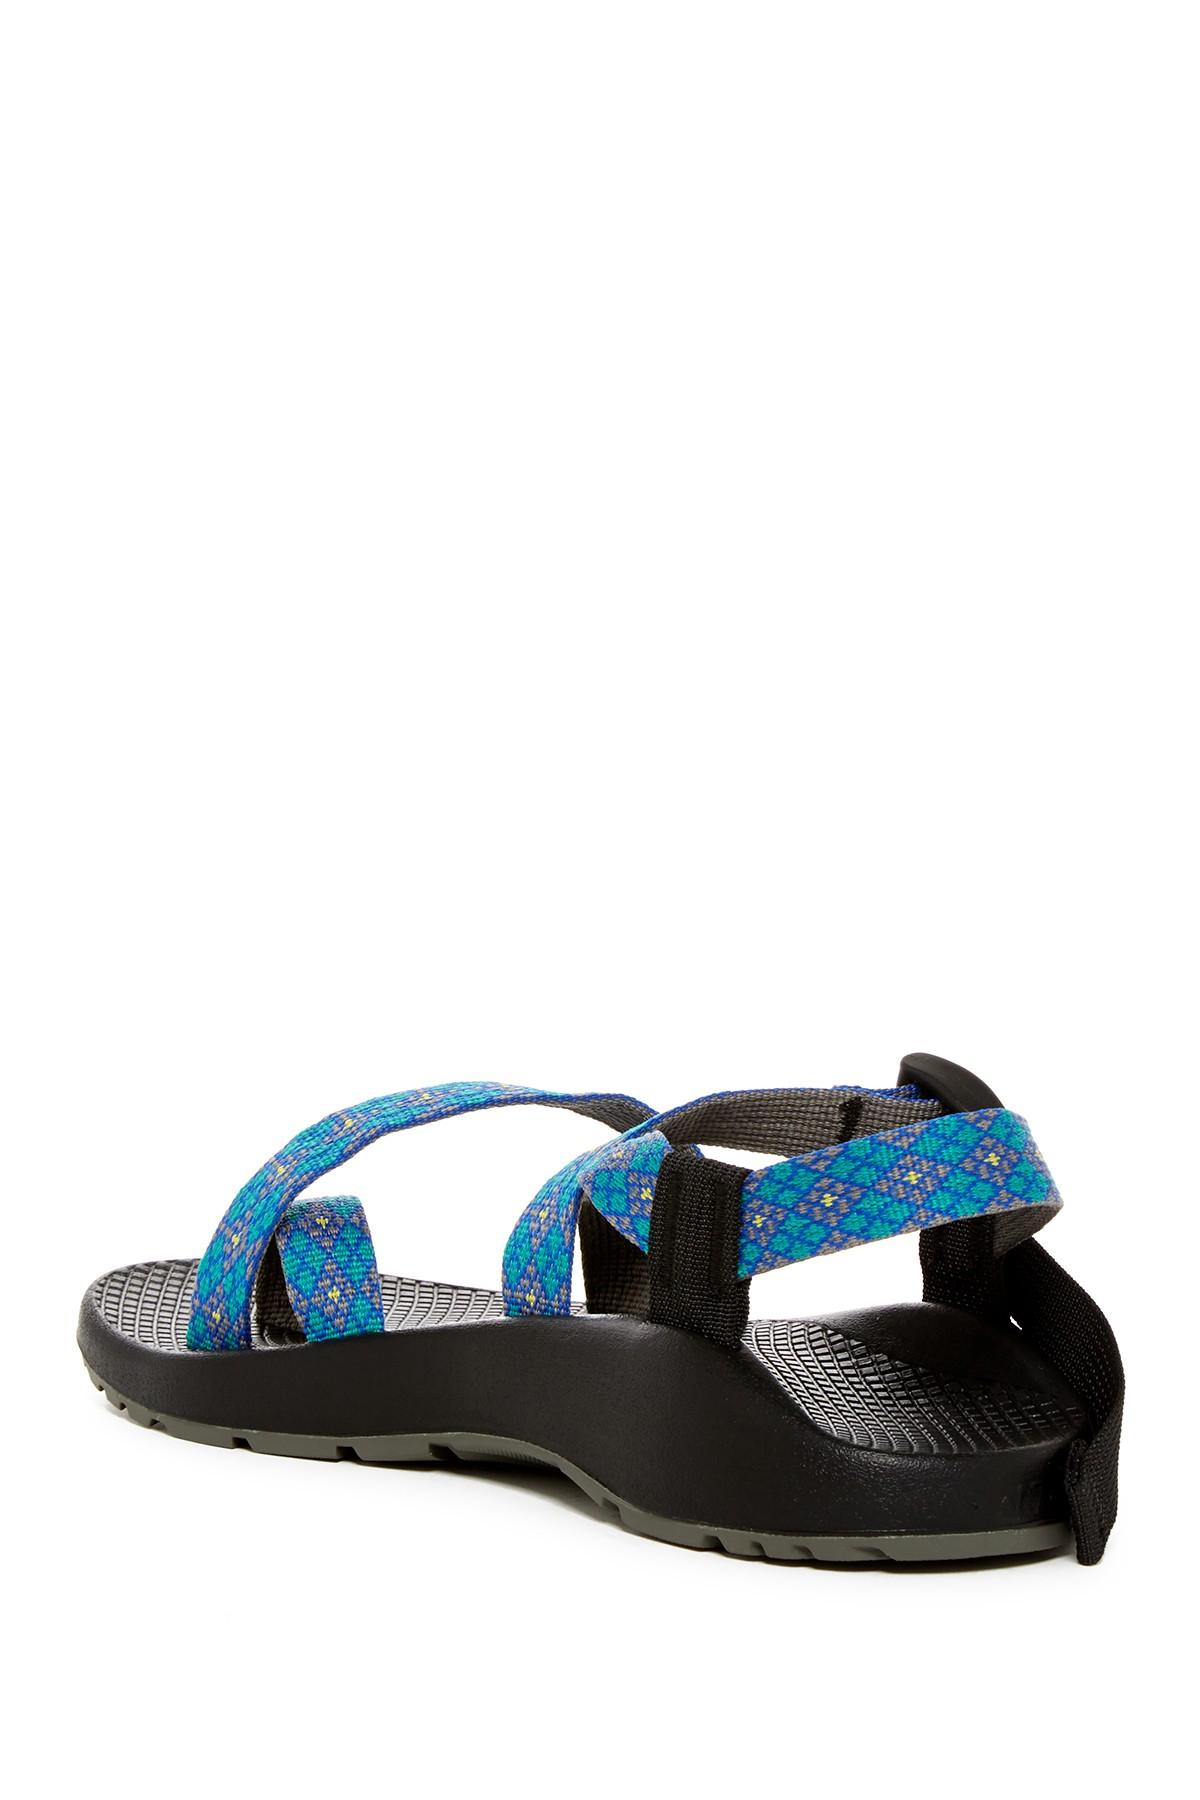 Chaco Z2 Classic Sandal In Blue Lyst